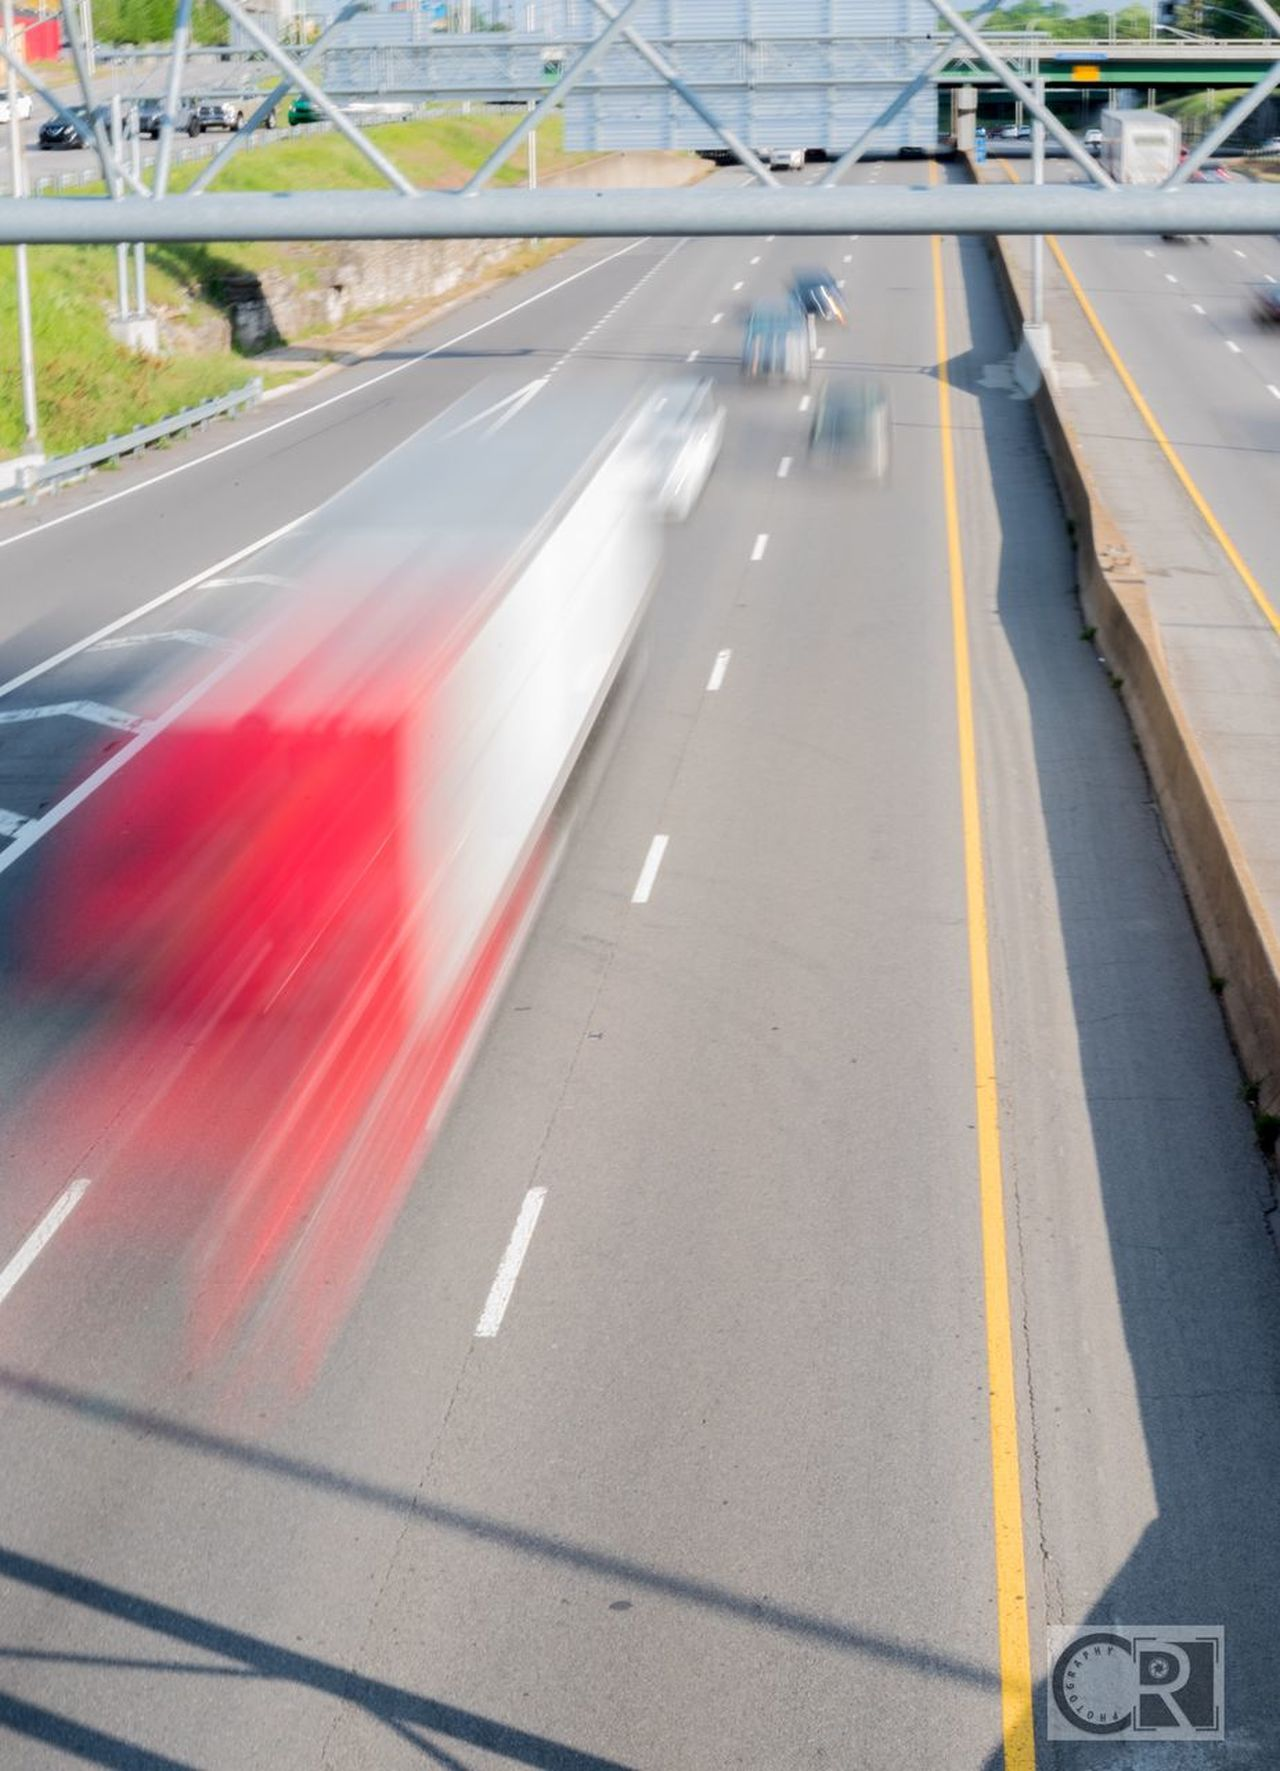 In a rush. Nashville Highwayphotography Longexposure Longexposurephotography Traffic Speed Outdoors Blurred Motion Mode Of Transport Transportation Motion Road Car Day City No People Chipriggsphotography 365project